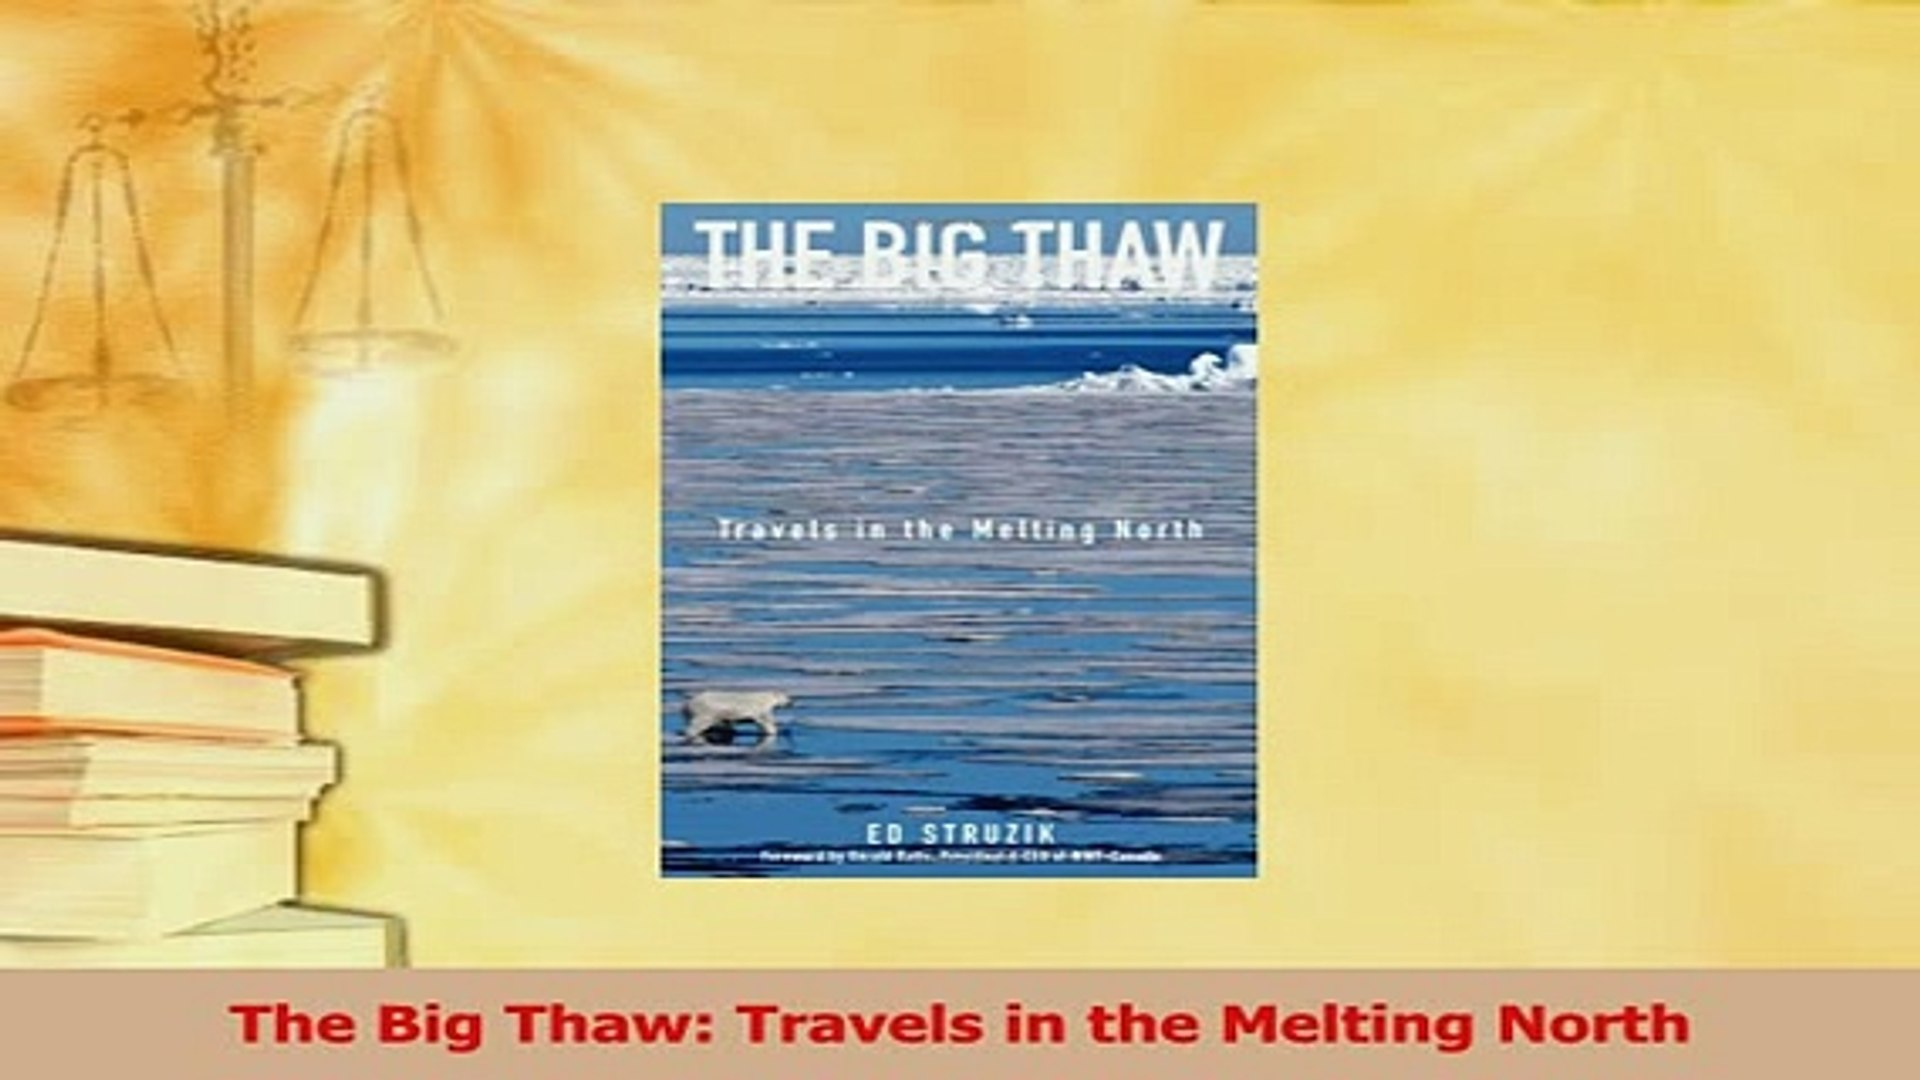 Travels in the Melting North The Big Thaw